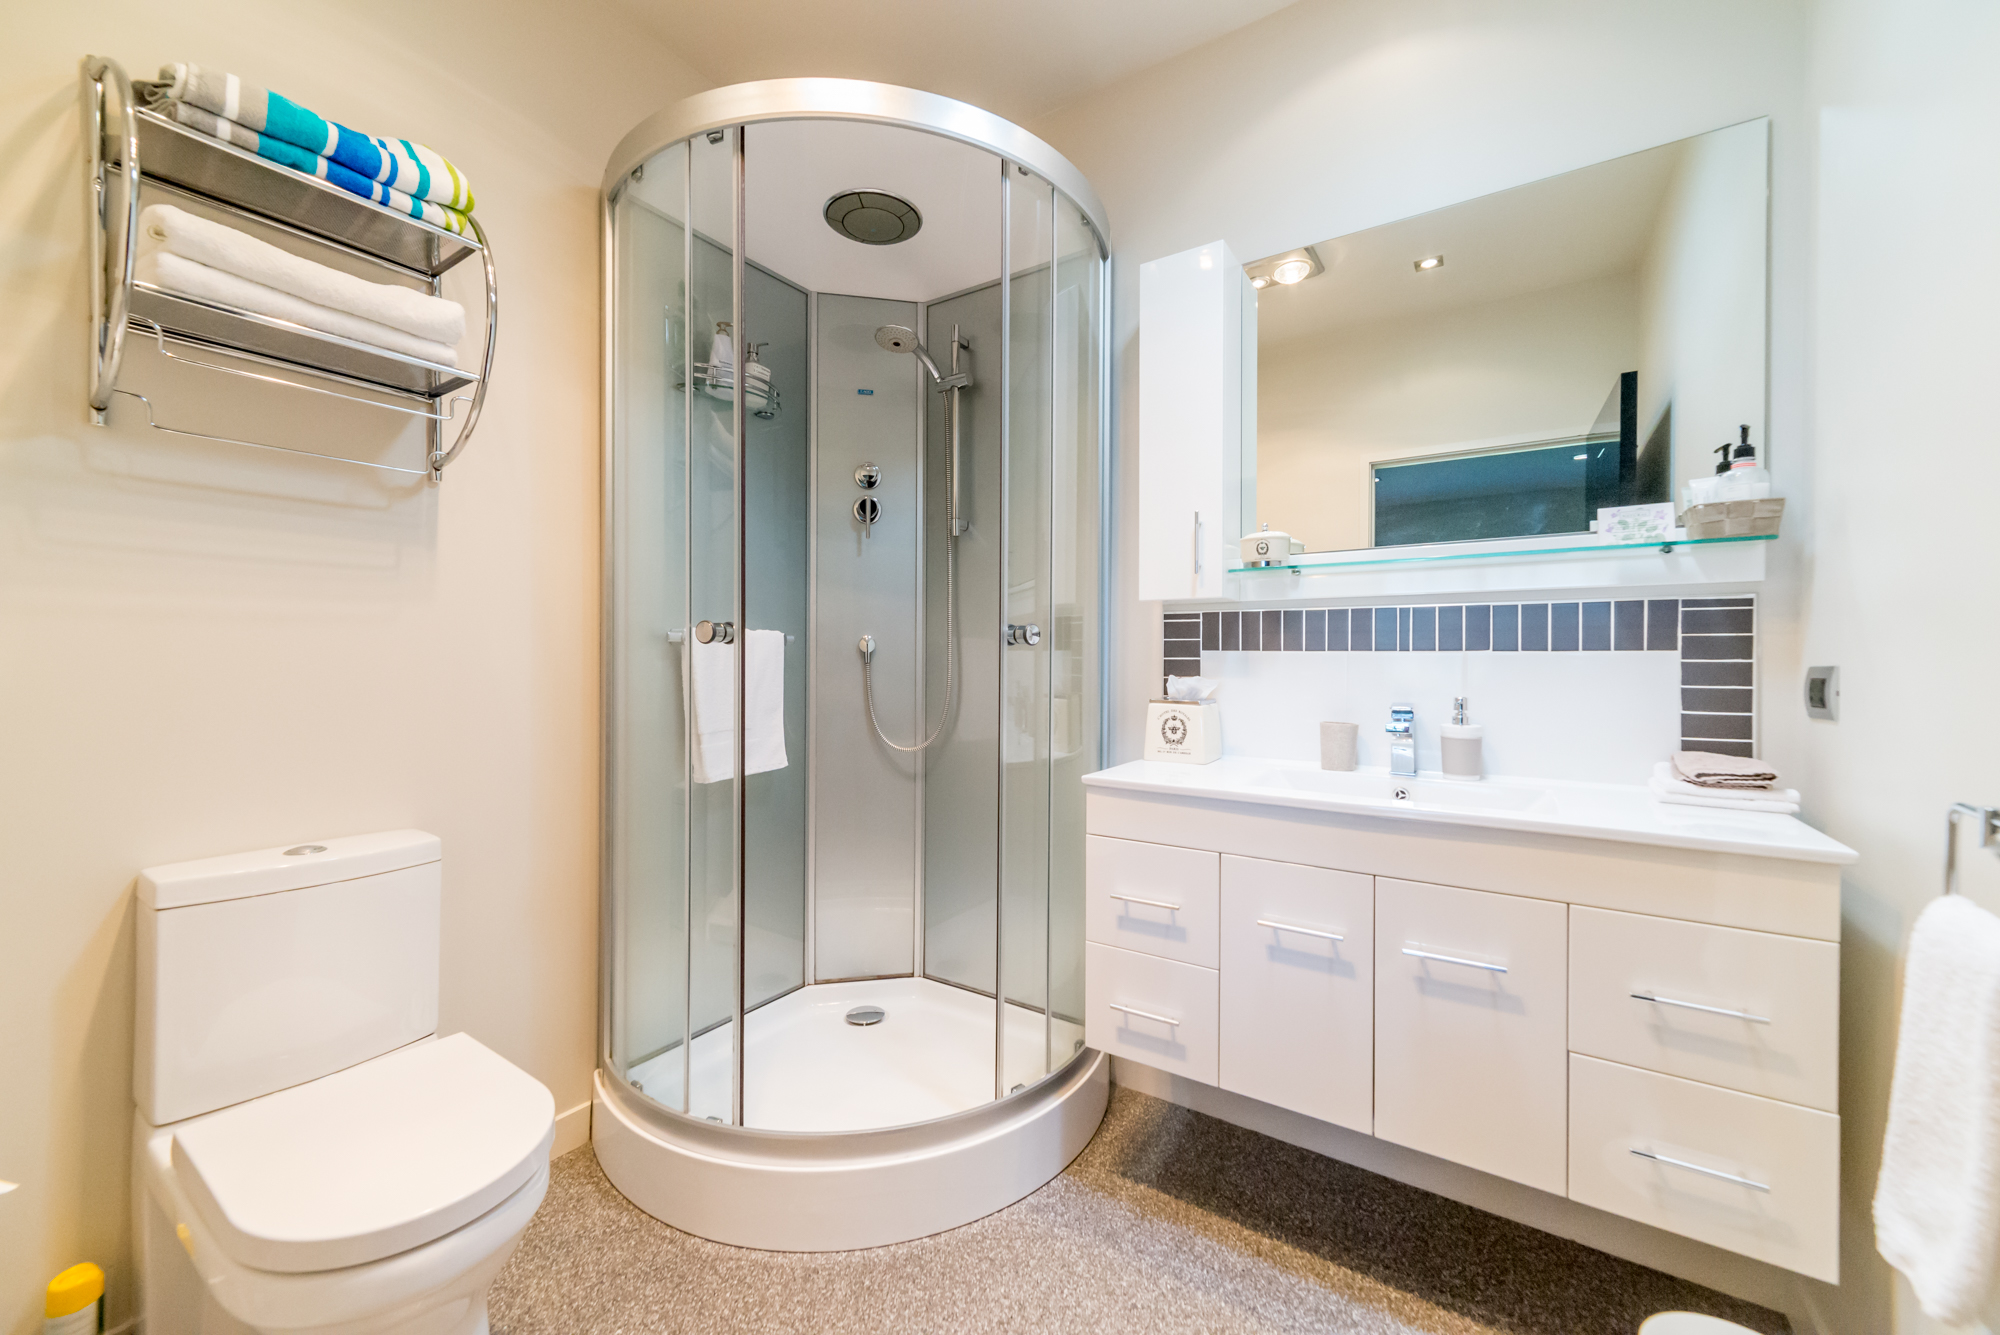 Tui suite bathroom